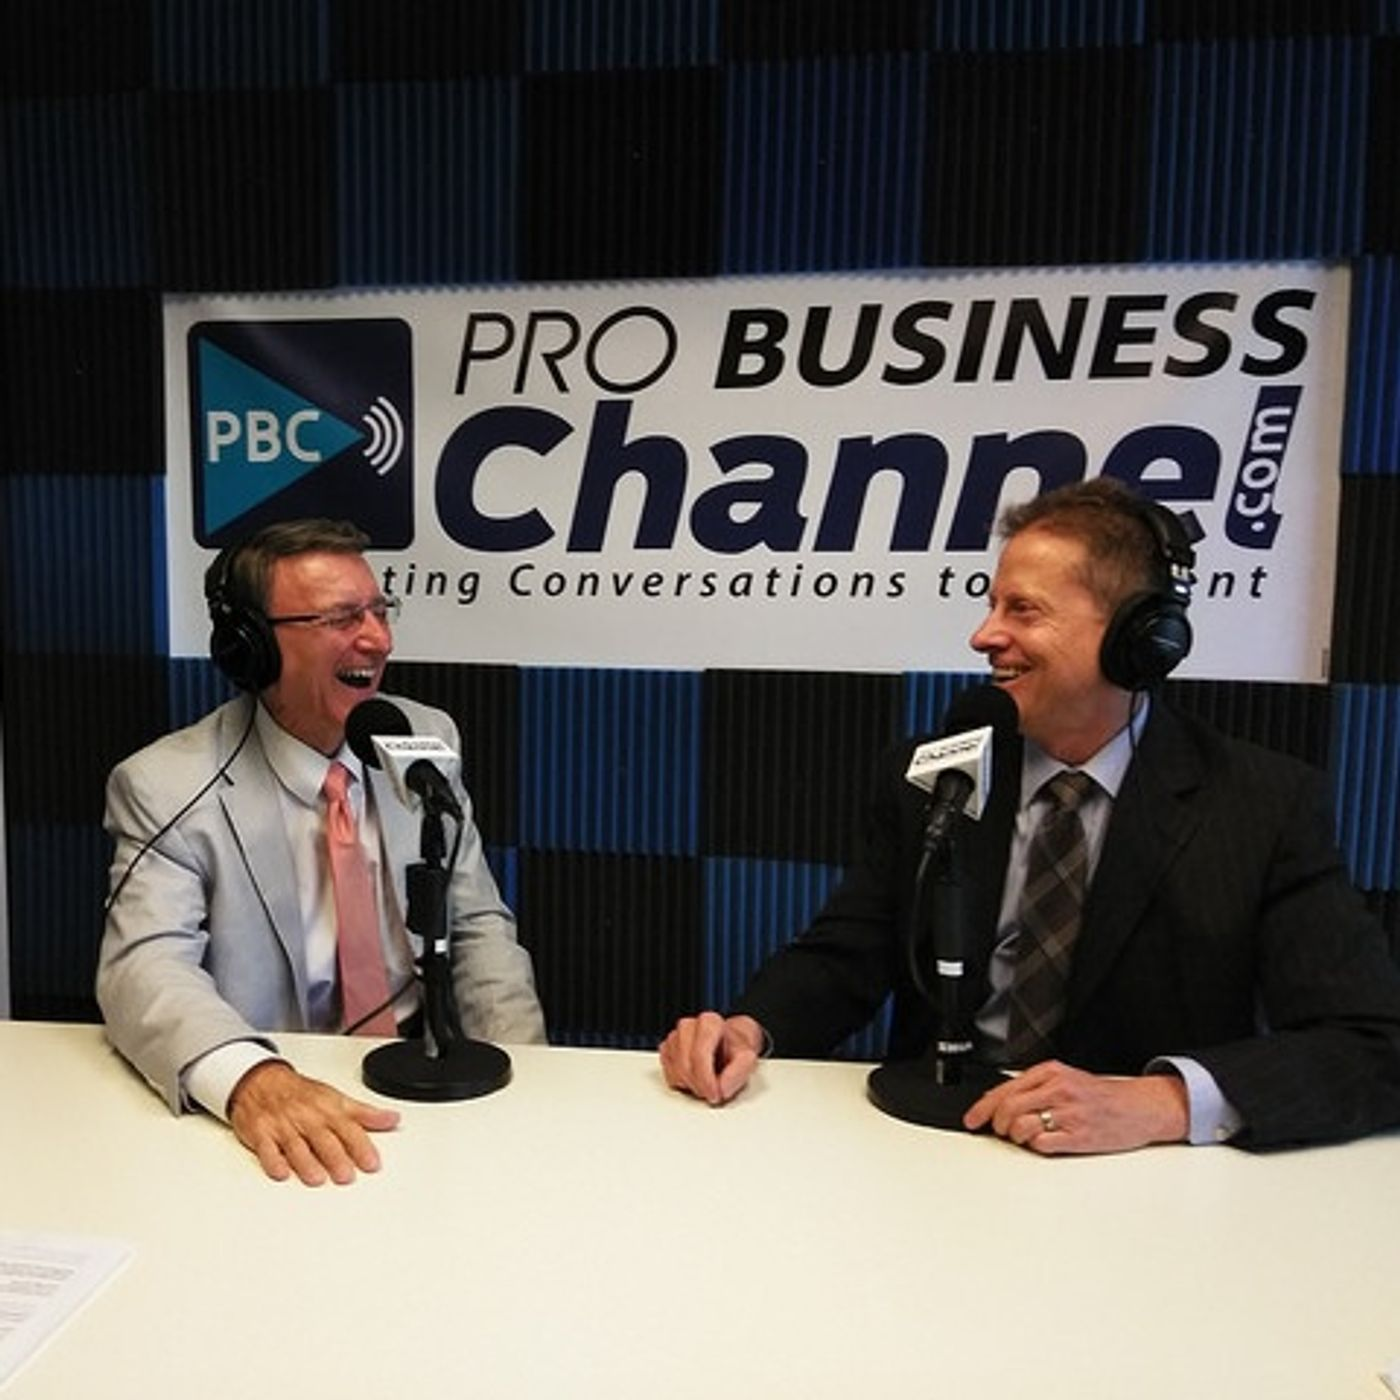 Jeff Plank of HLB Gross Collins Talks Profit Enhancement, Tech Start-ups, Mindshop and More